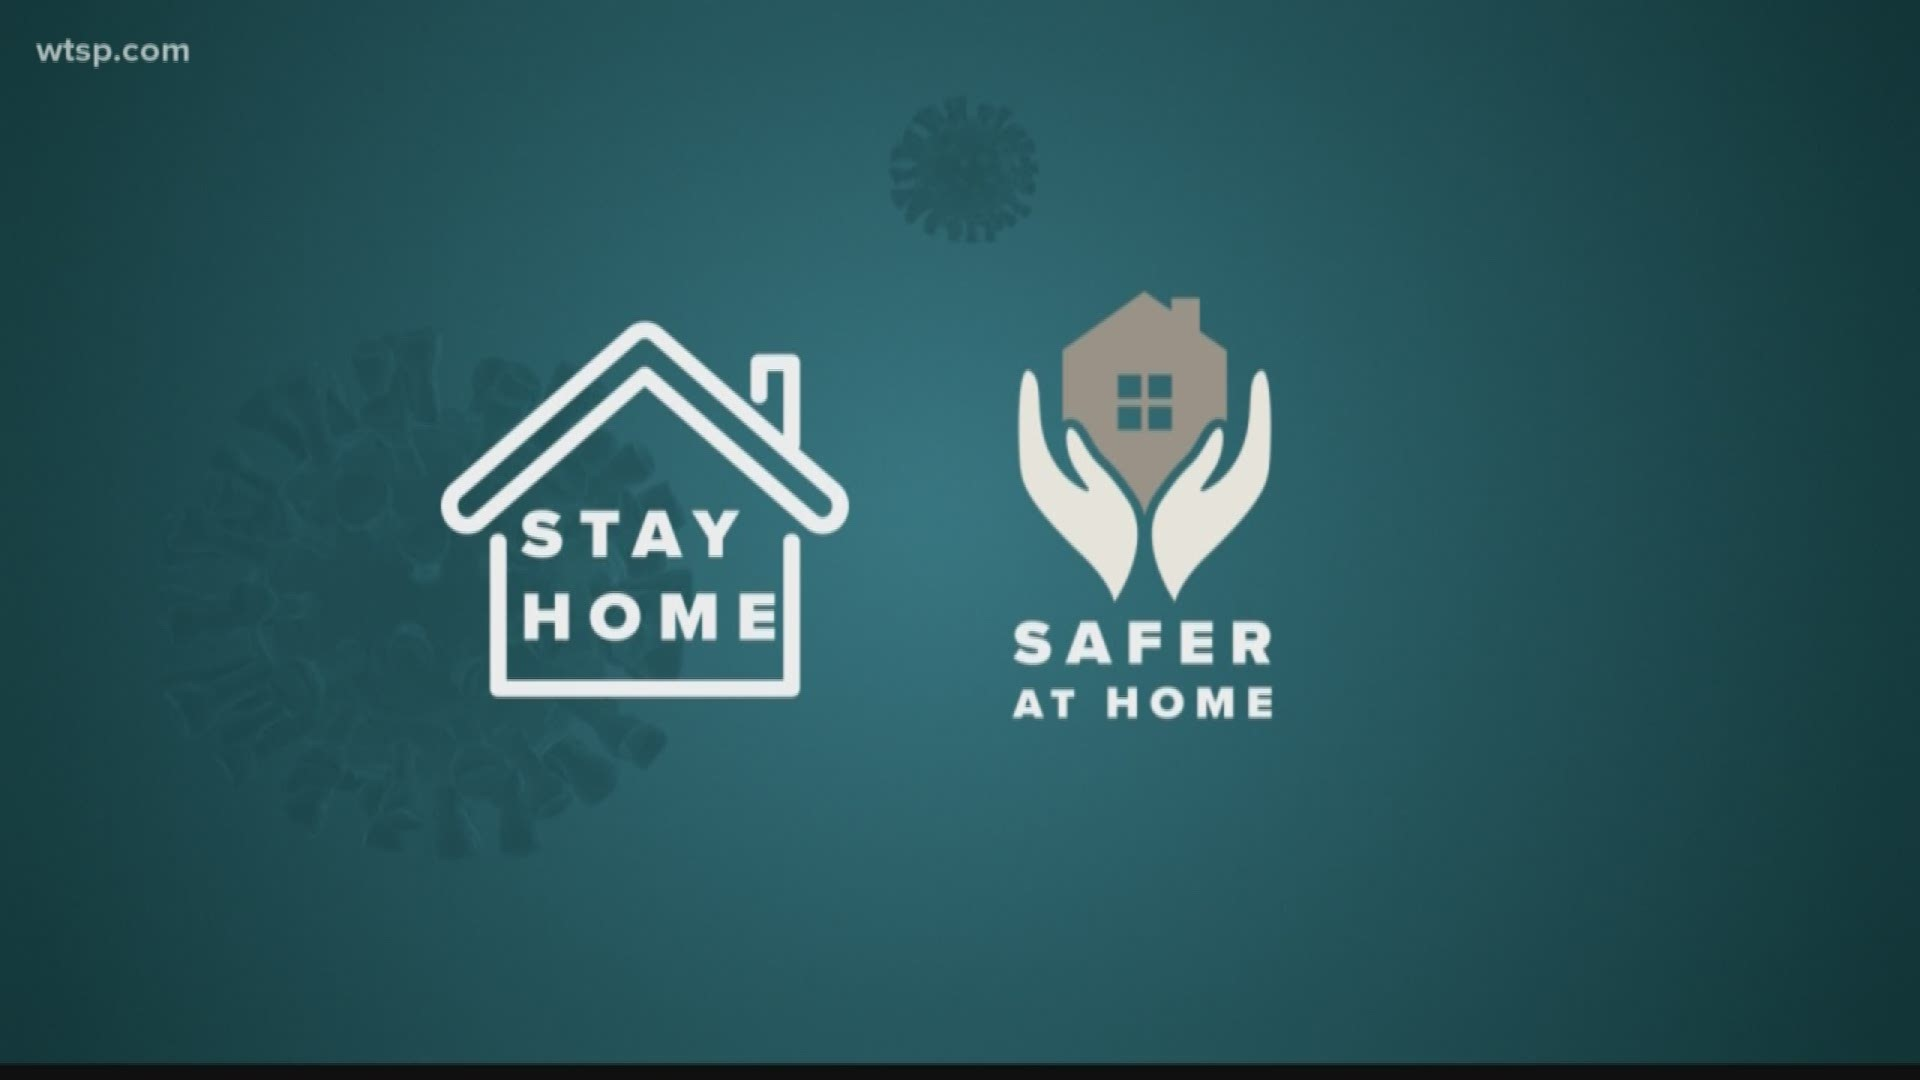 Safer-at-home vs. shelter-in-place: What does it mean? | wtsp.com